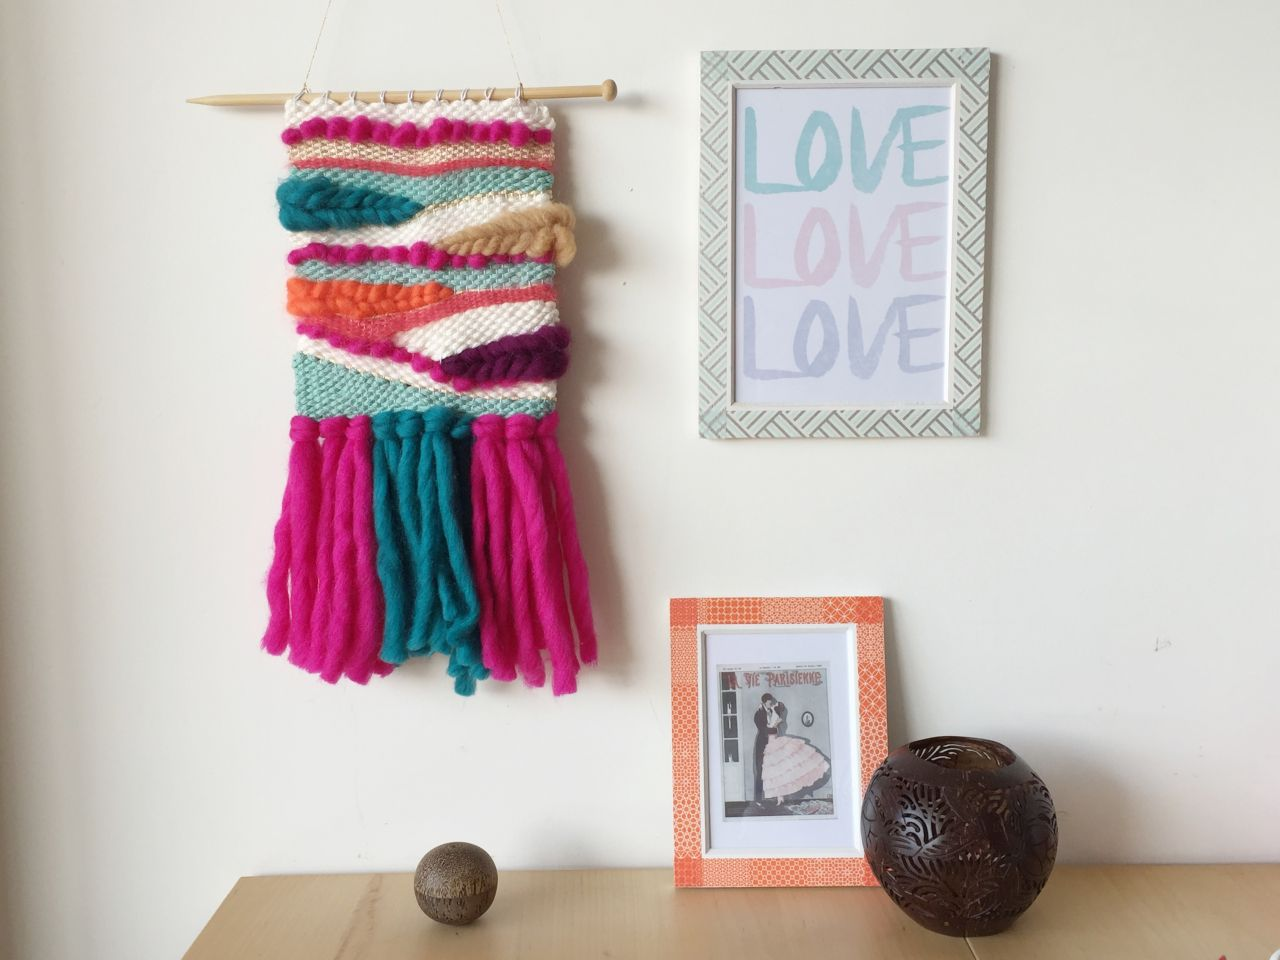 tejer la pared de DIY decorativo - Perles & Co